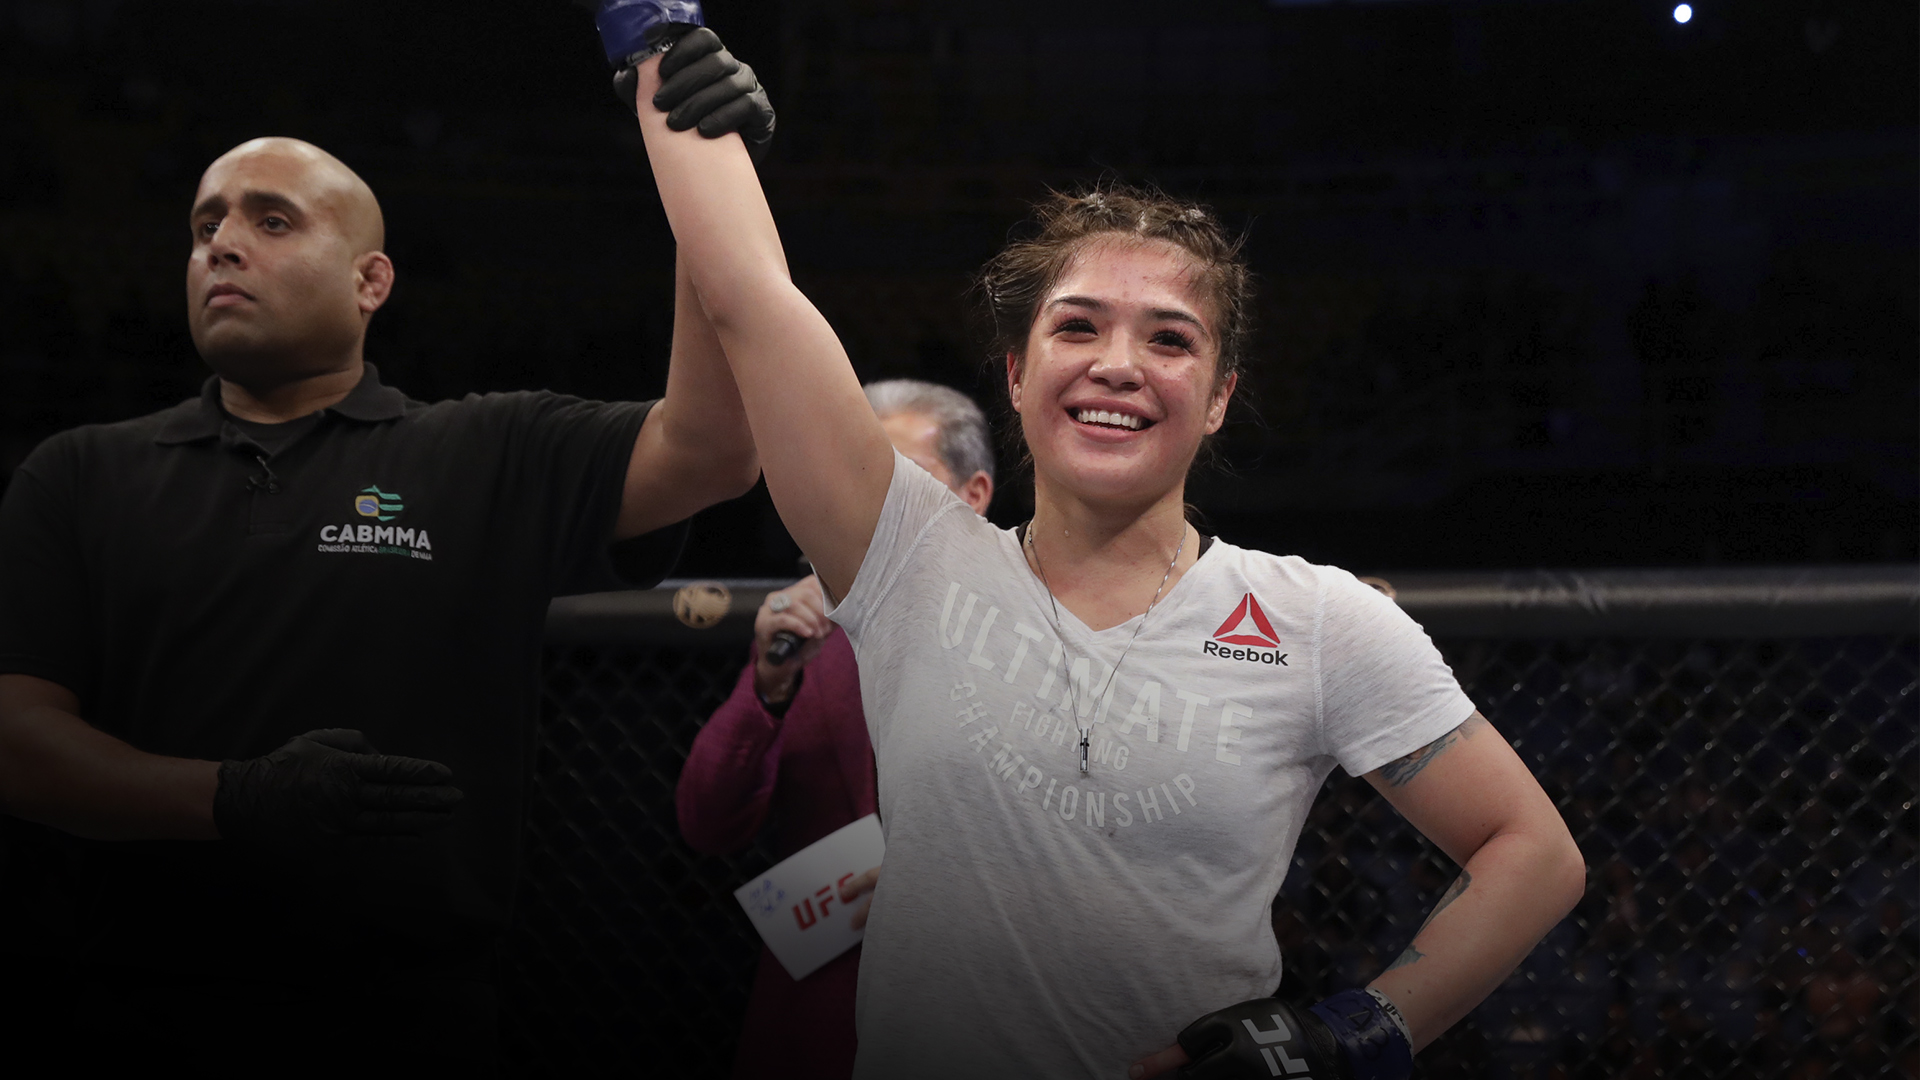 Tracy Cortez celebrates after defeating Vanessa Melo of Brazil in their bantamweight fight during the UFC Fight Night event at Ibirapuera Gymnasium on November 16, 2019 in Sao Paulo, Brazil. (Photo by Alexandre Schneider/Zuffa LLC